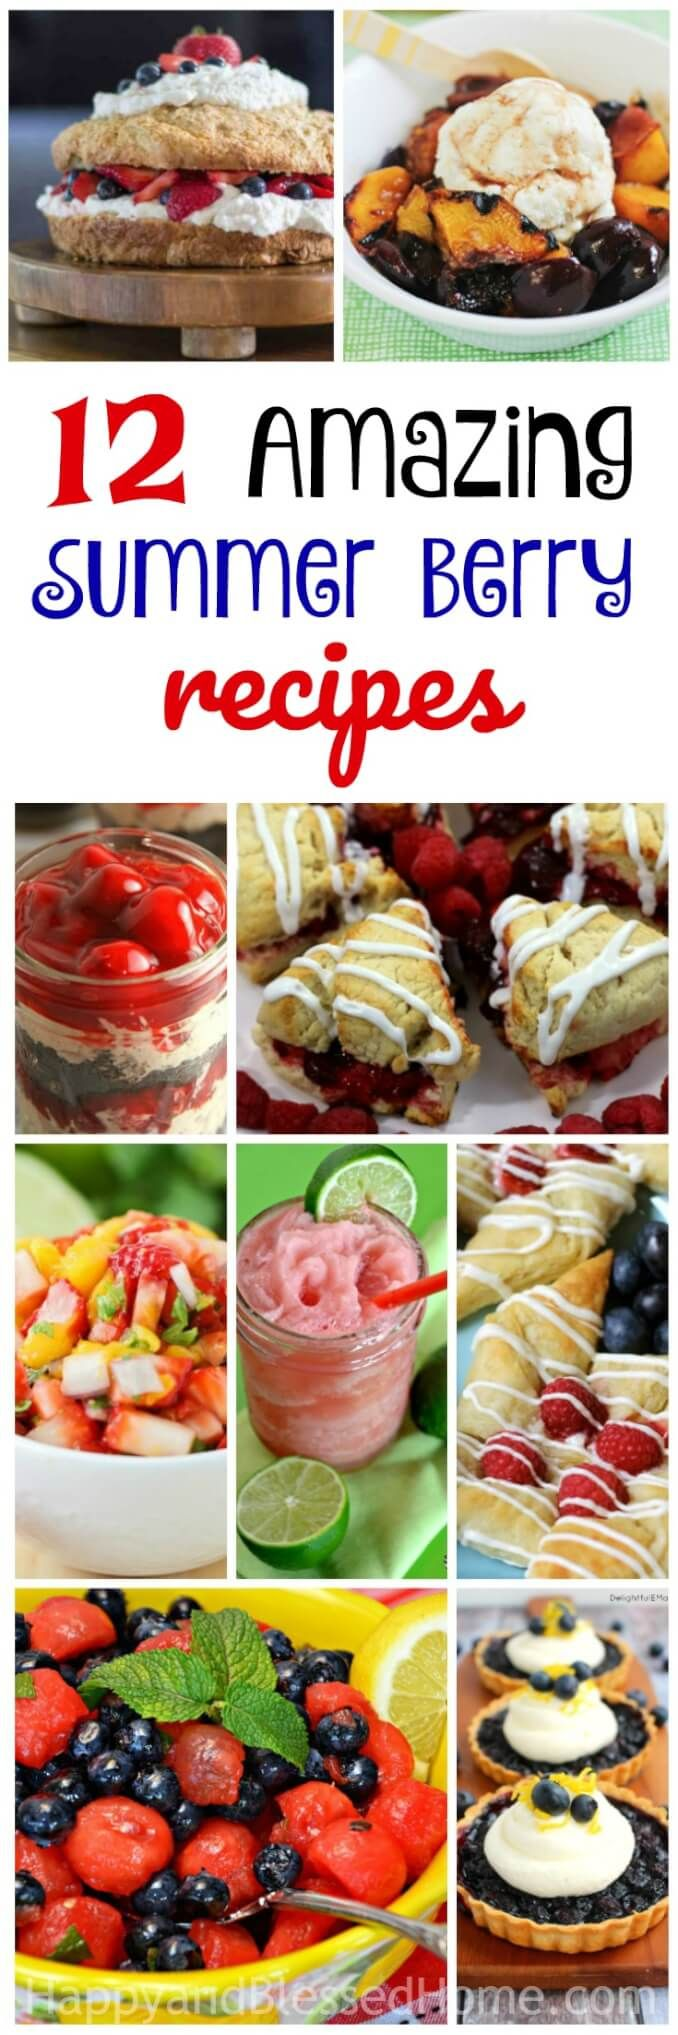 12 Amazing Summer Berry Recipes - Tasty things you can make with summer berries. Dishes with peaches and cherries, and a treat with strawberries. And don't forget blueberries and a raspberry dessert. We've got slushy, pies, tarts and salsa. You just can't beat this round-up of 12 Amazing Recipes you can Make with Summer Berries.